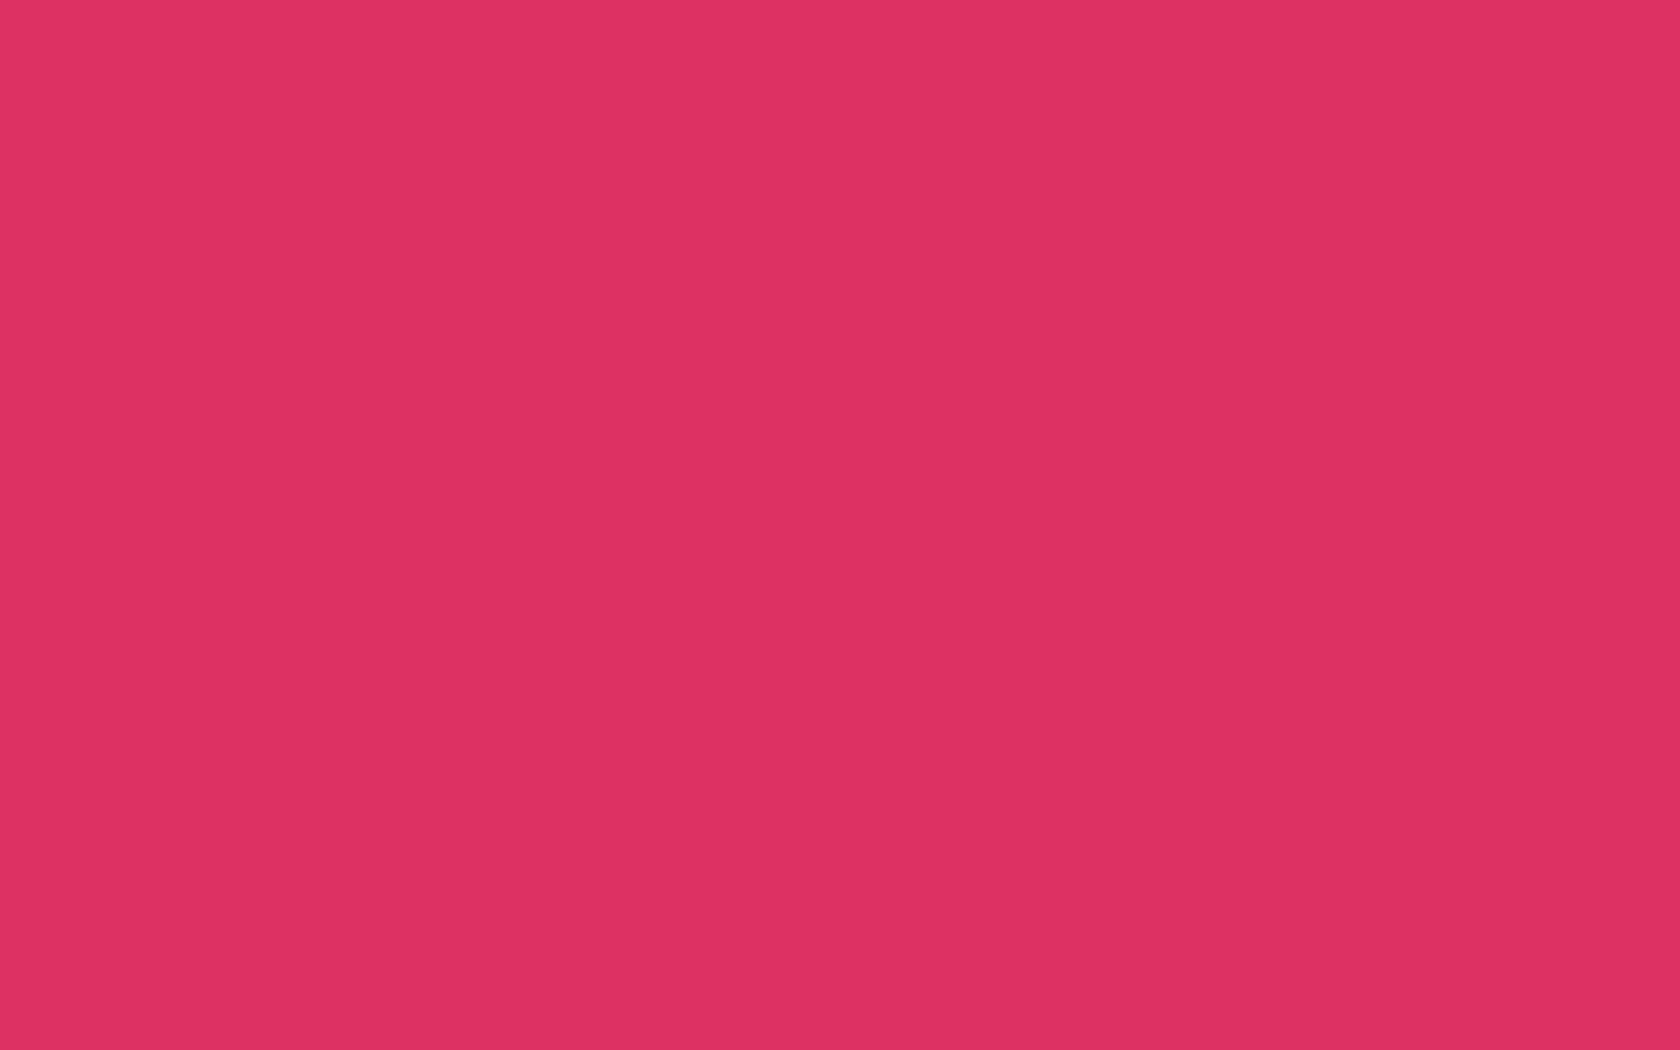 1680x1050 Cherry Solid Color Background